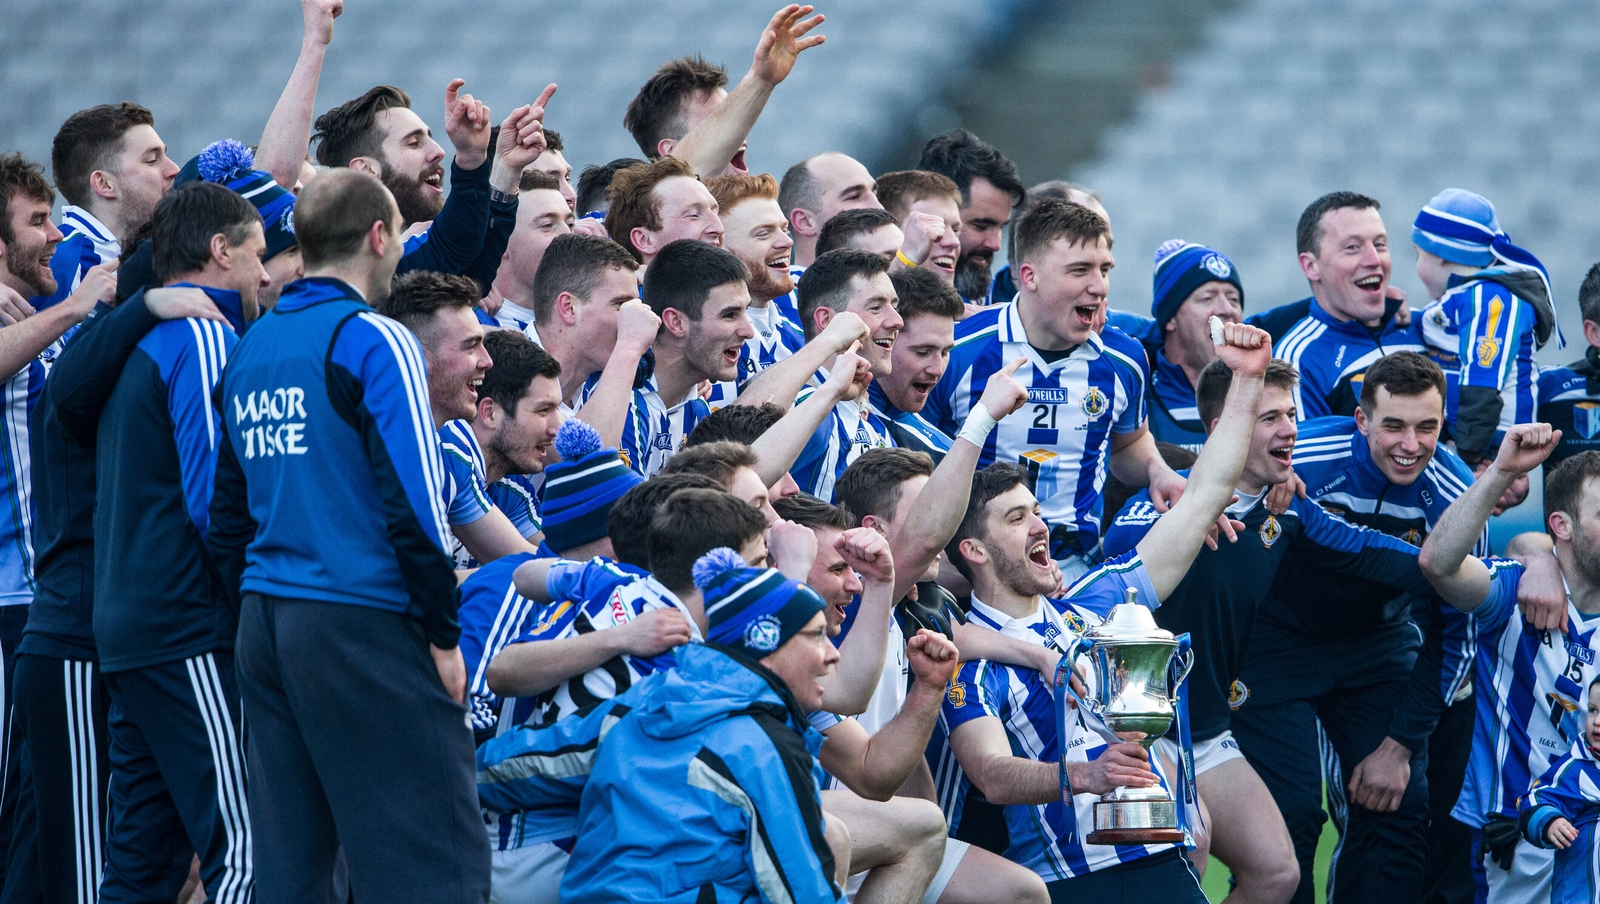 Image - Ballyboden St Enda players celebrate the 2016 All-Ireland club football title